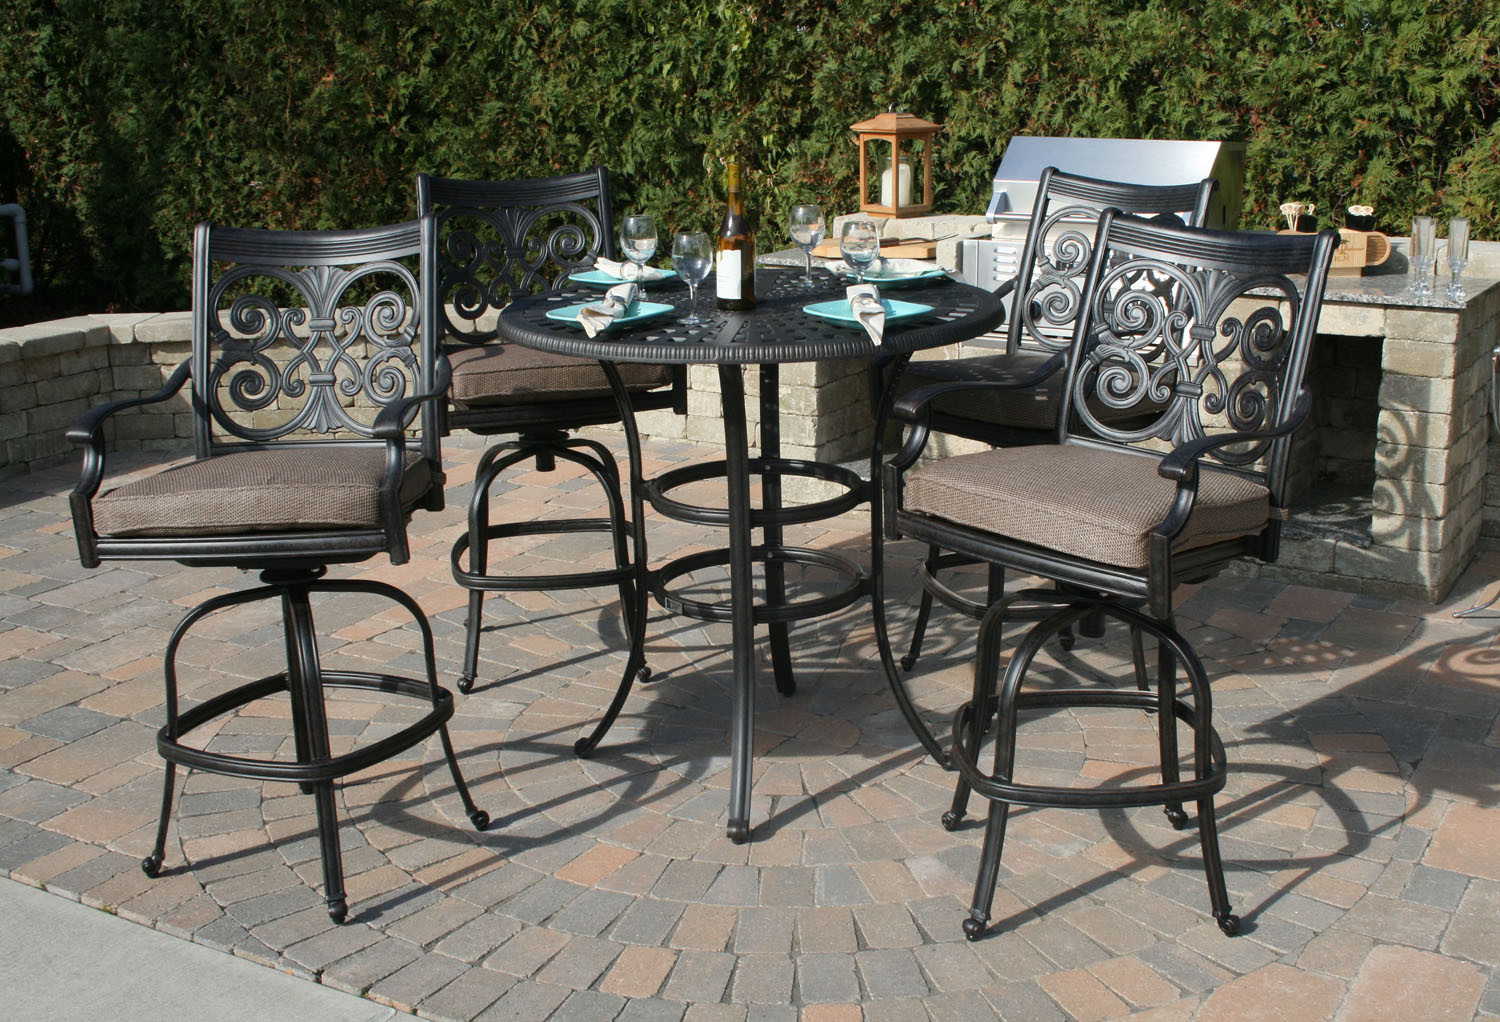 Best ideas about Tall Patio Table . Save or Pin Swivel Patio Chairs Tall — All Home Design Ideas Table Now.